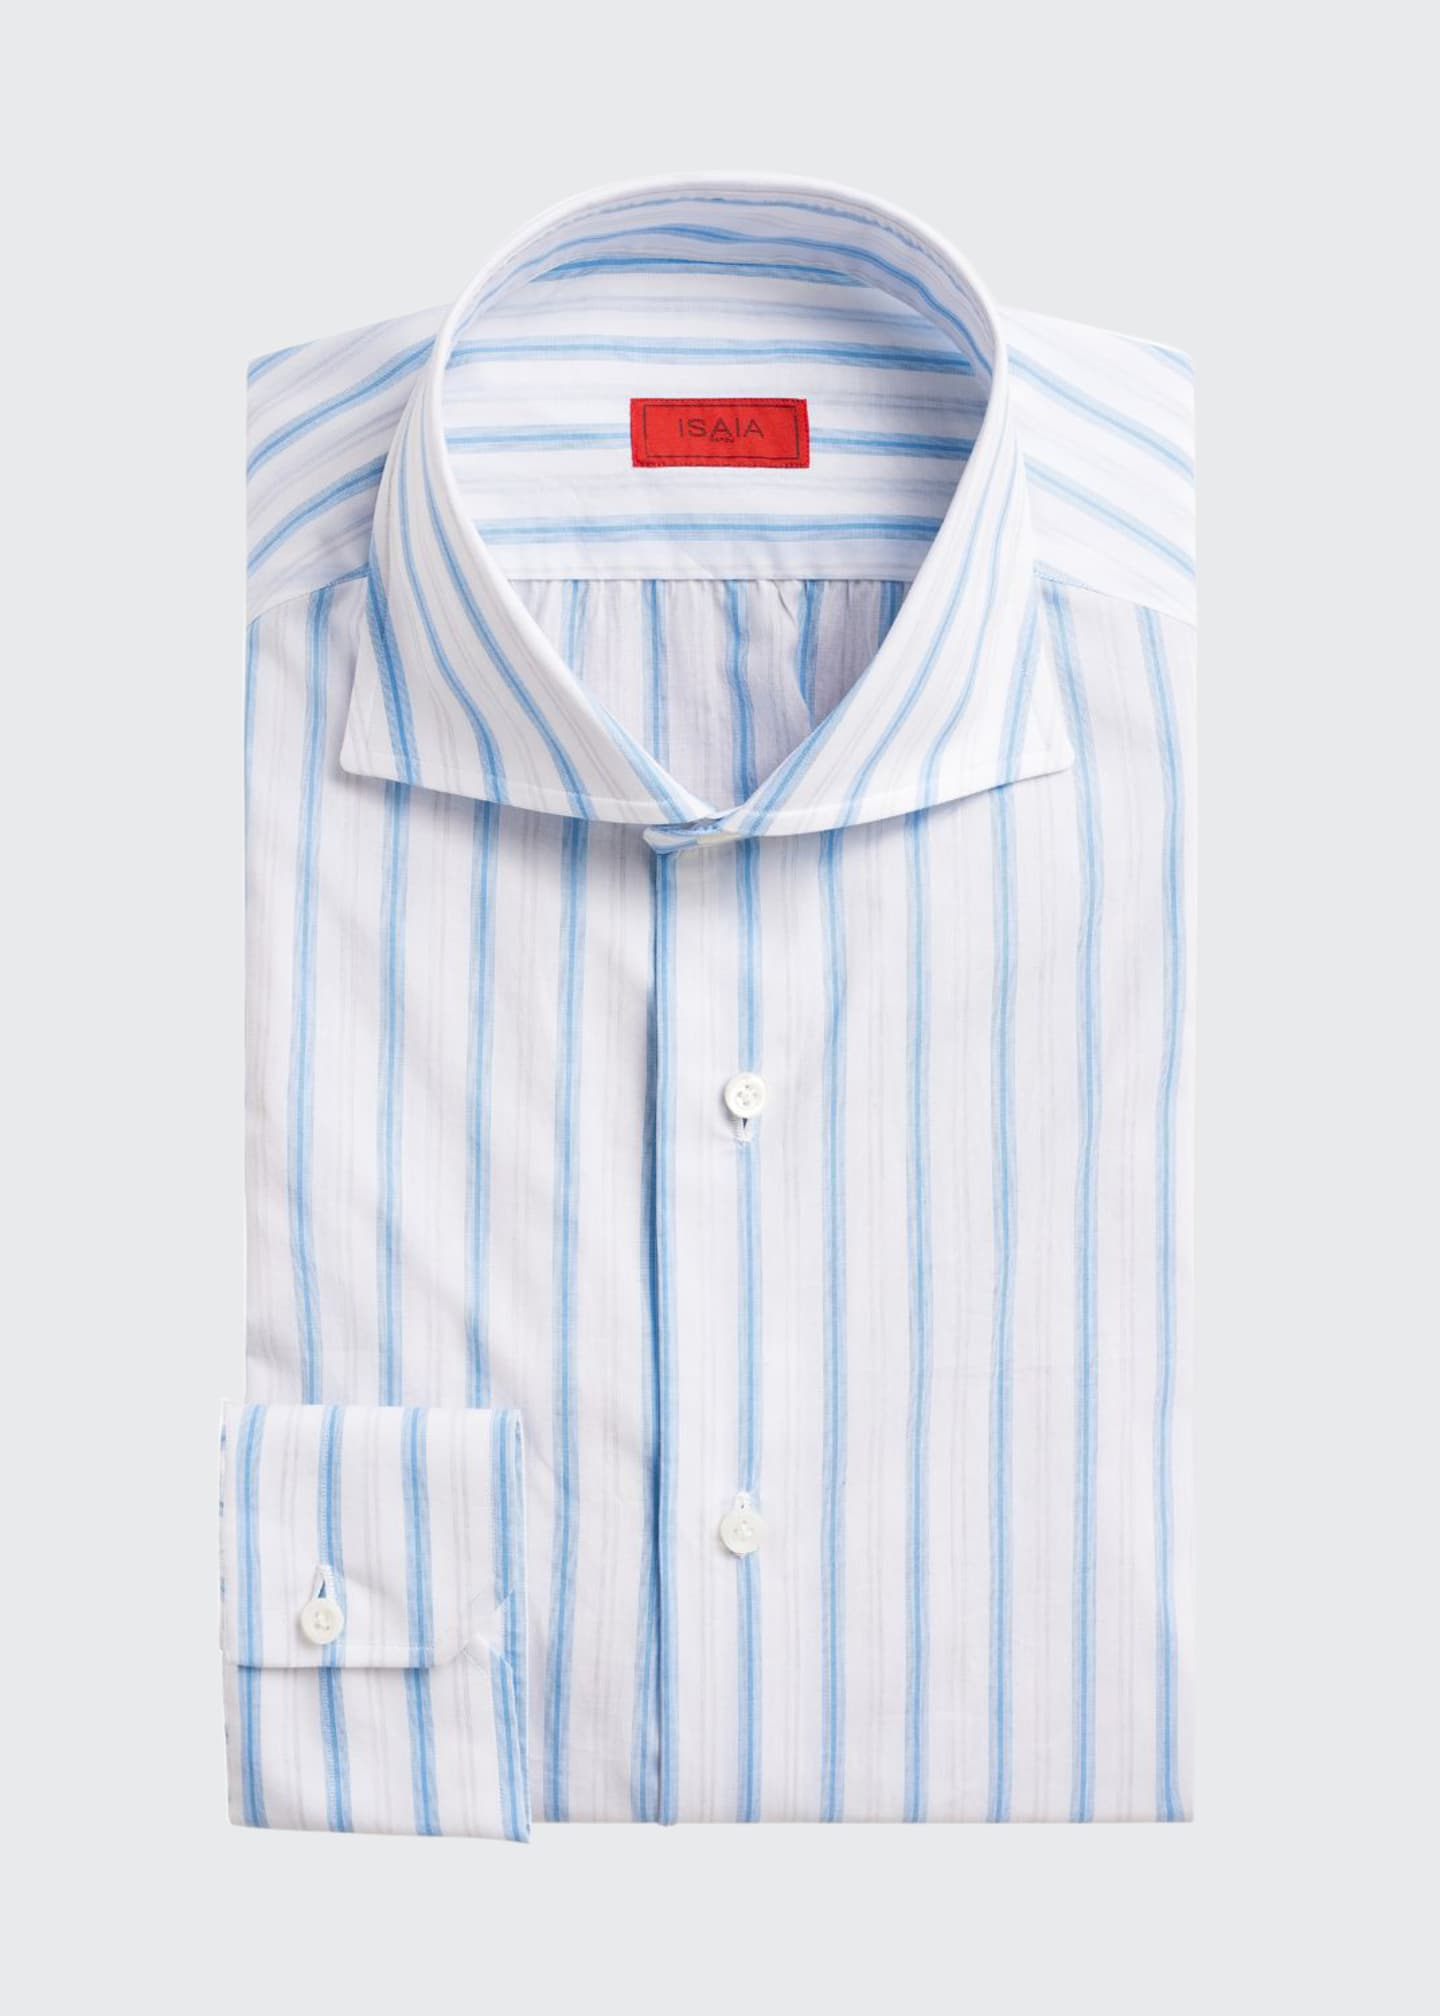 Isaia Multi-Stripe Cotton Dress Shirt, White/Blue